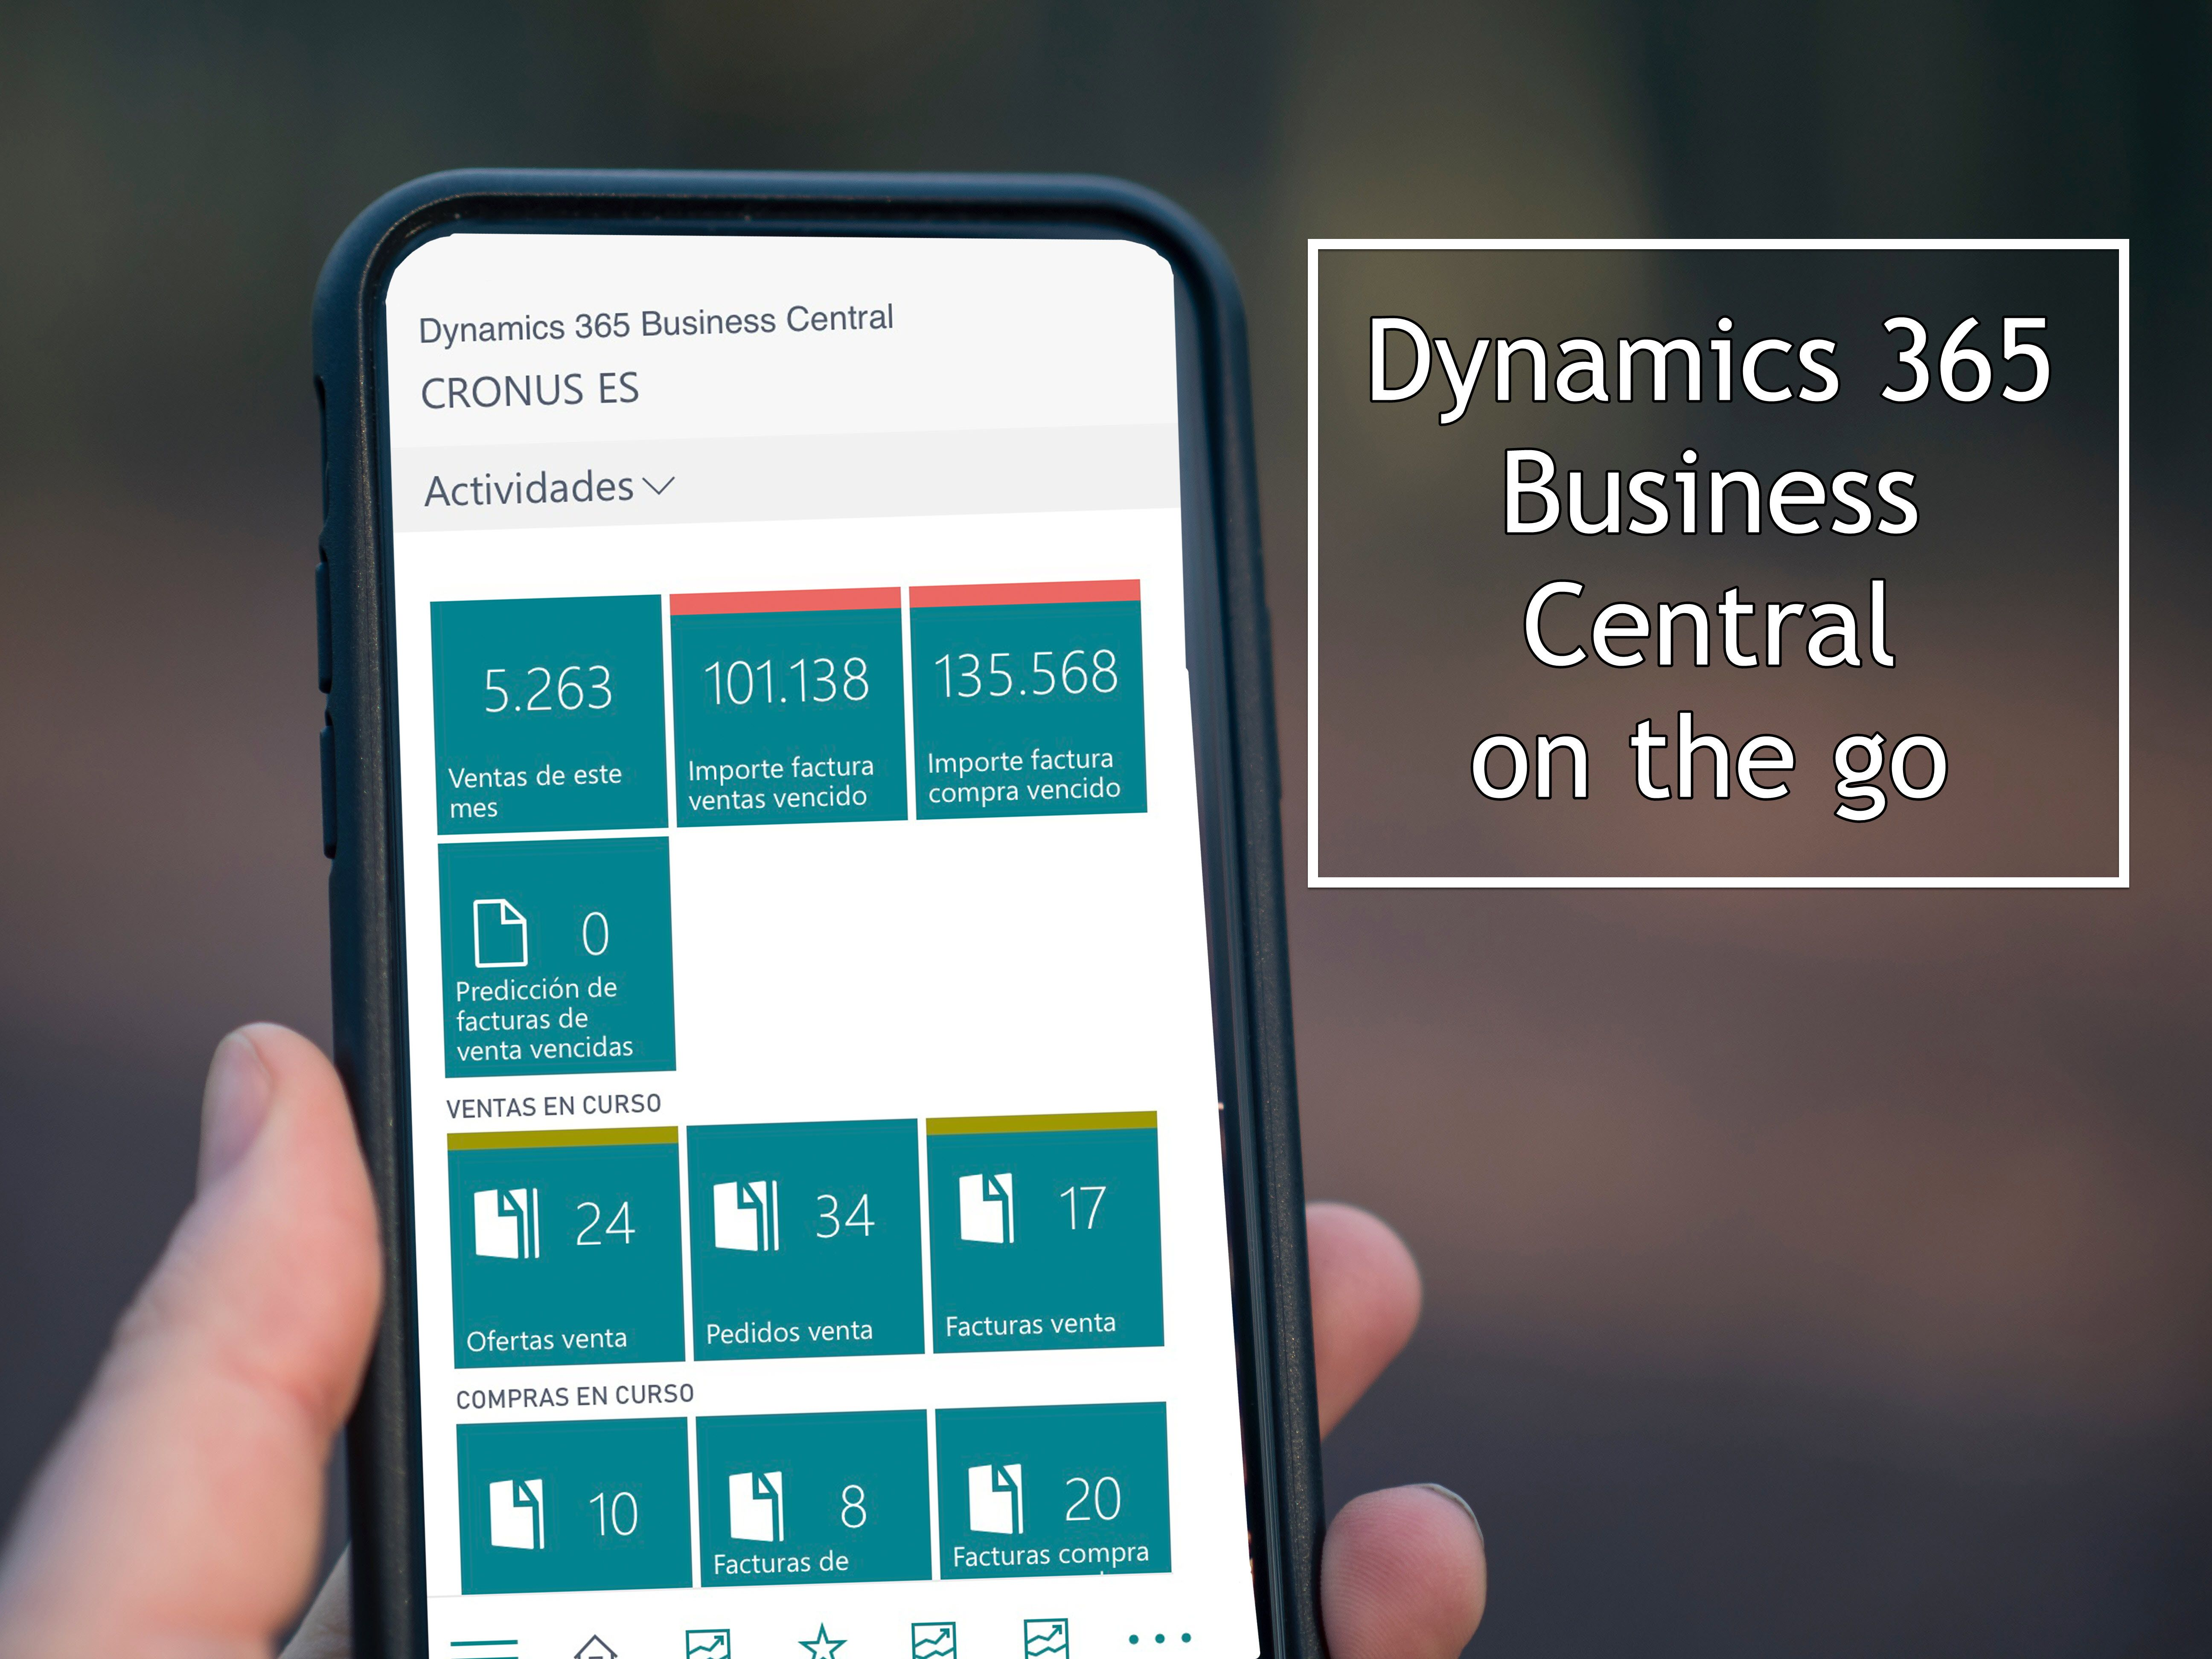 Dynamics 365 Business Central mobile